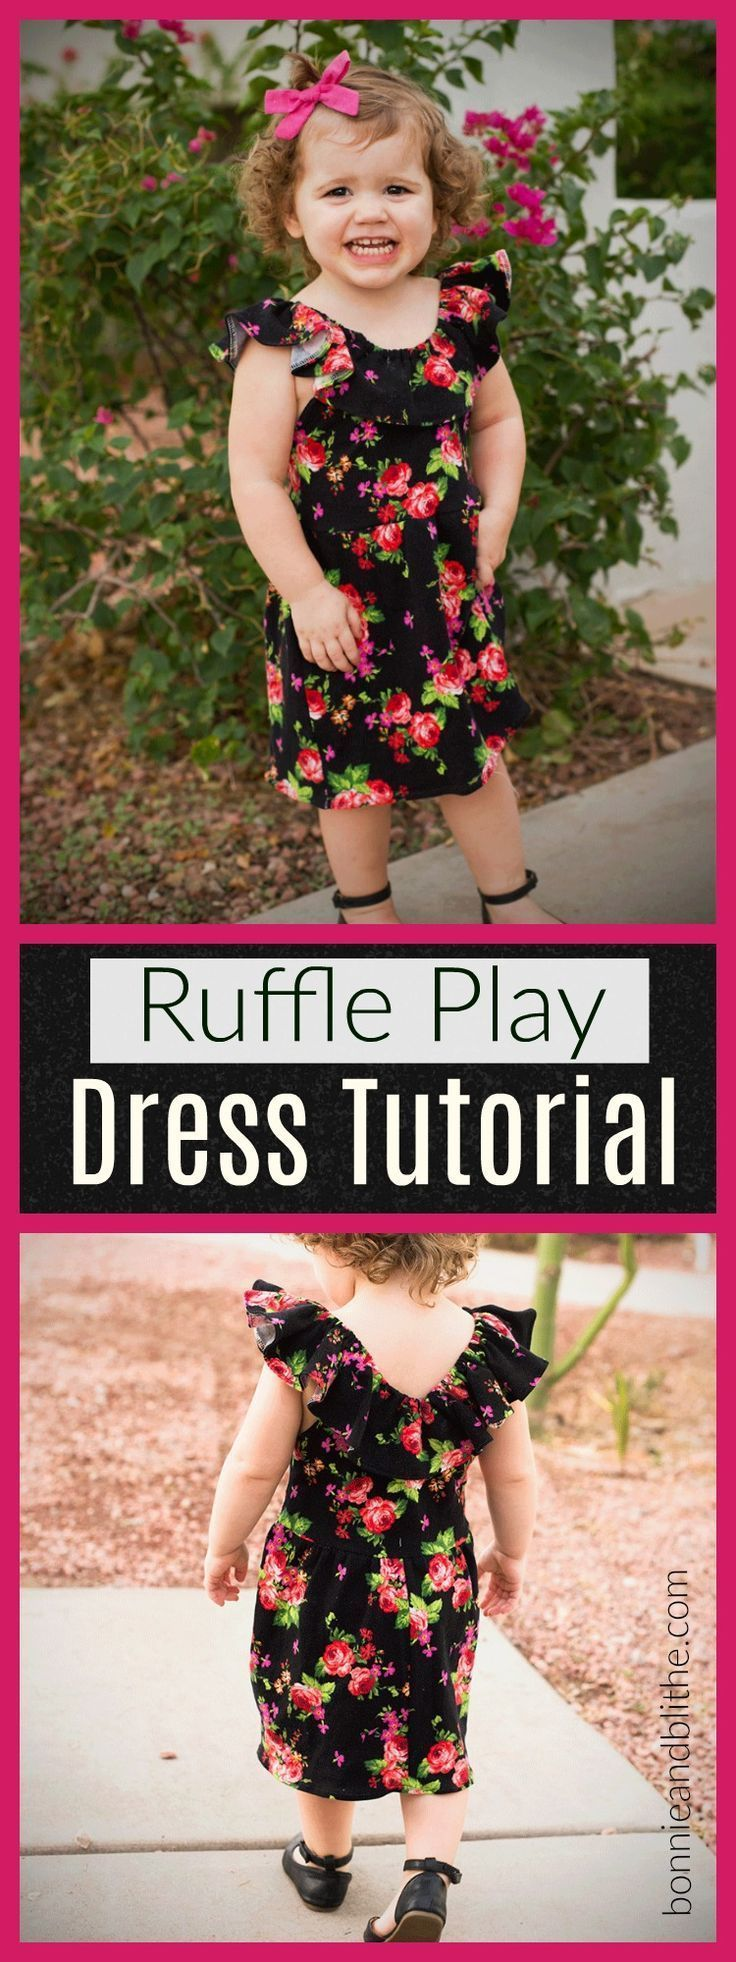 Get the free sewing pattern for a cute, knit ruffled play dress for a toddler! …